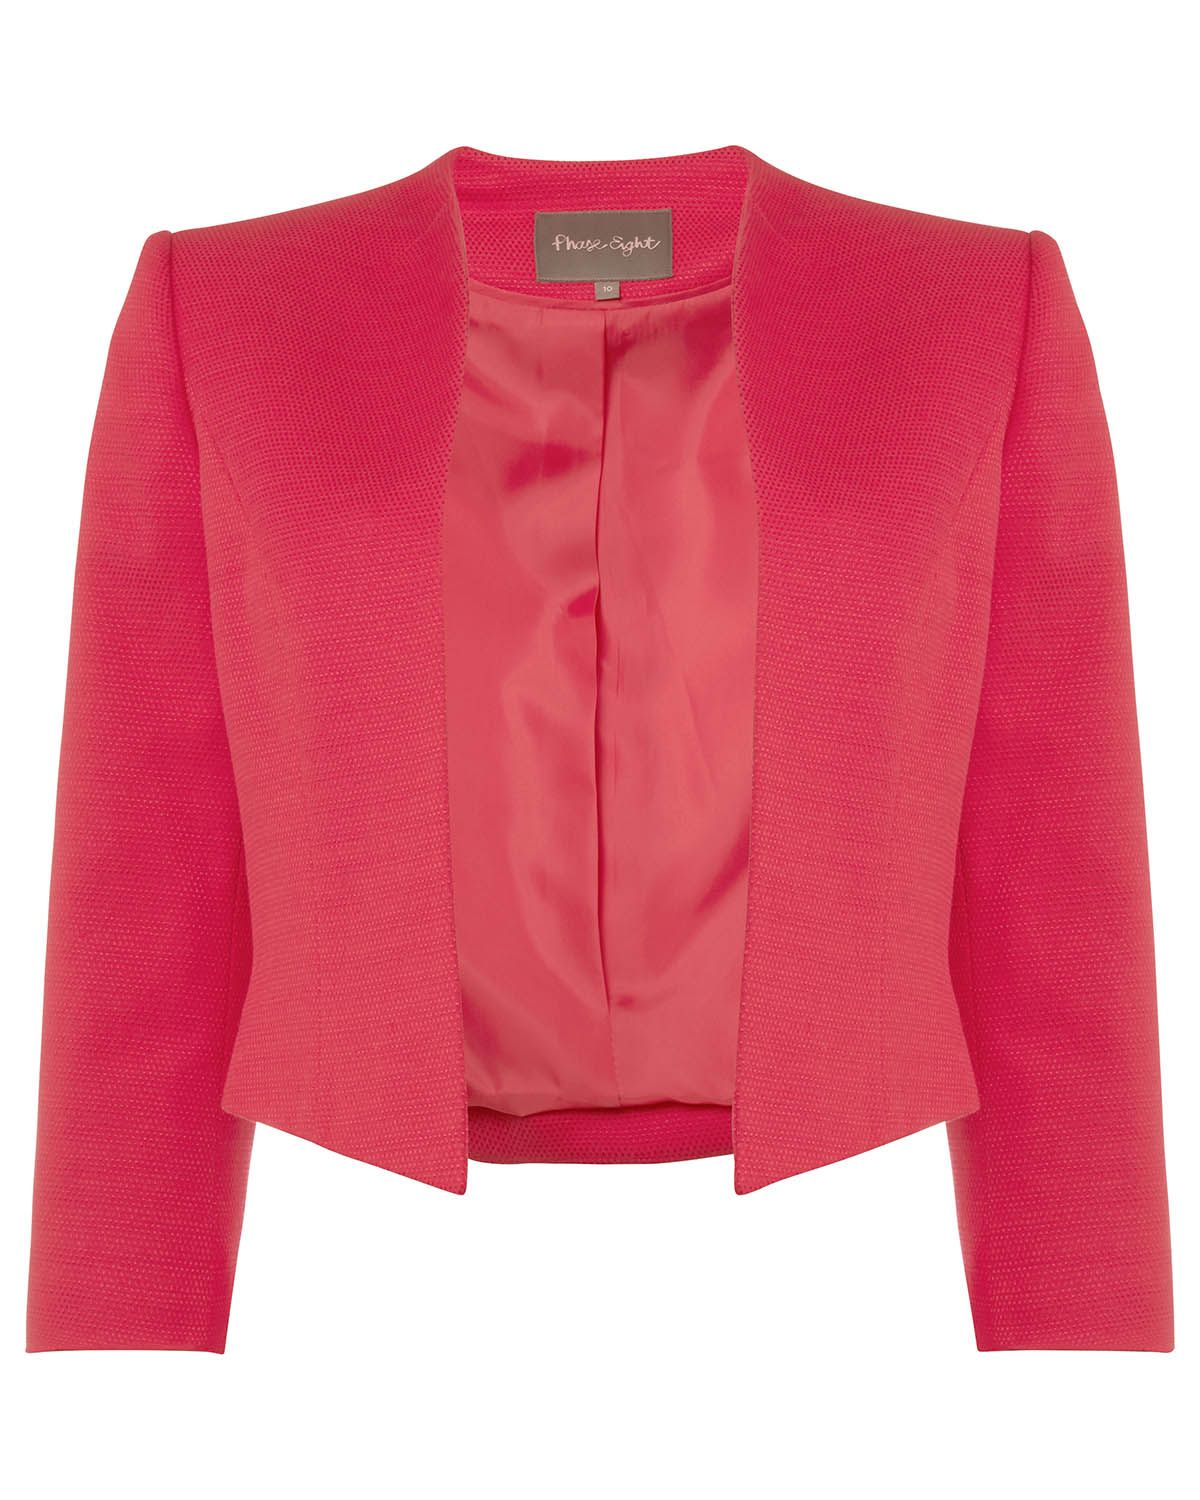 Pink dress and jacket for wedding  Phase Eight Tabitha Jacket Pink  Wedding outfits  Pinterest